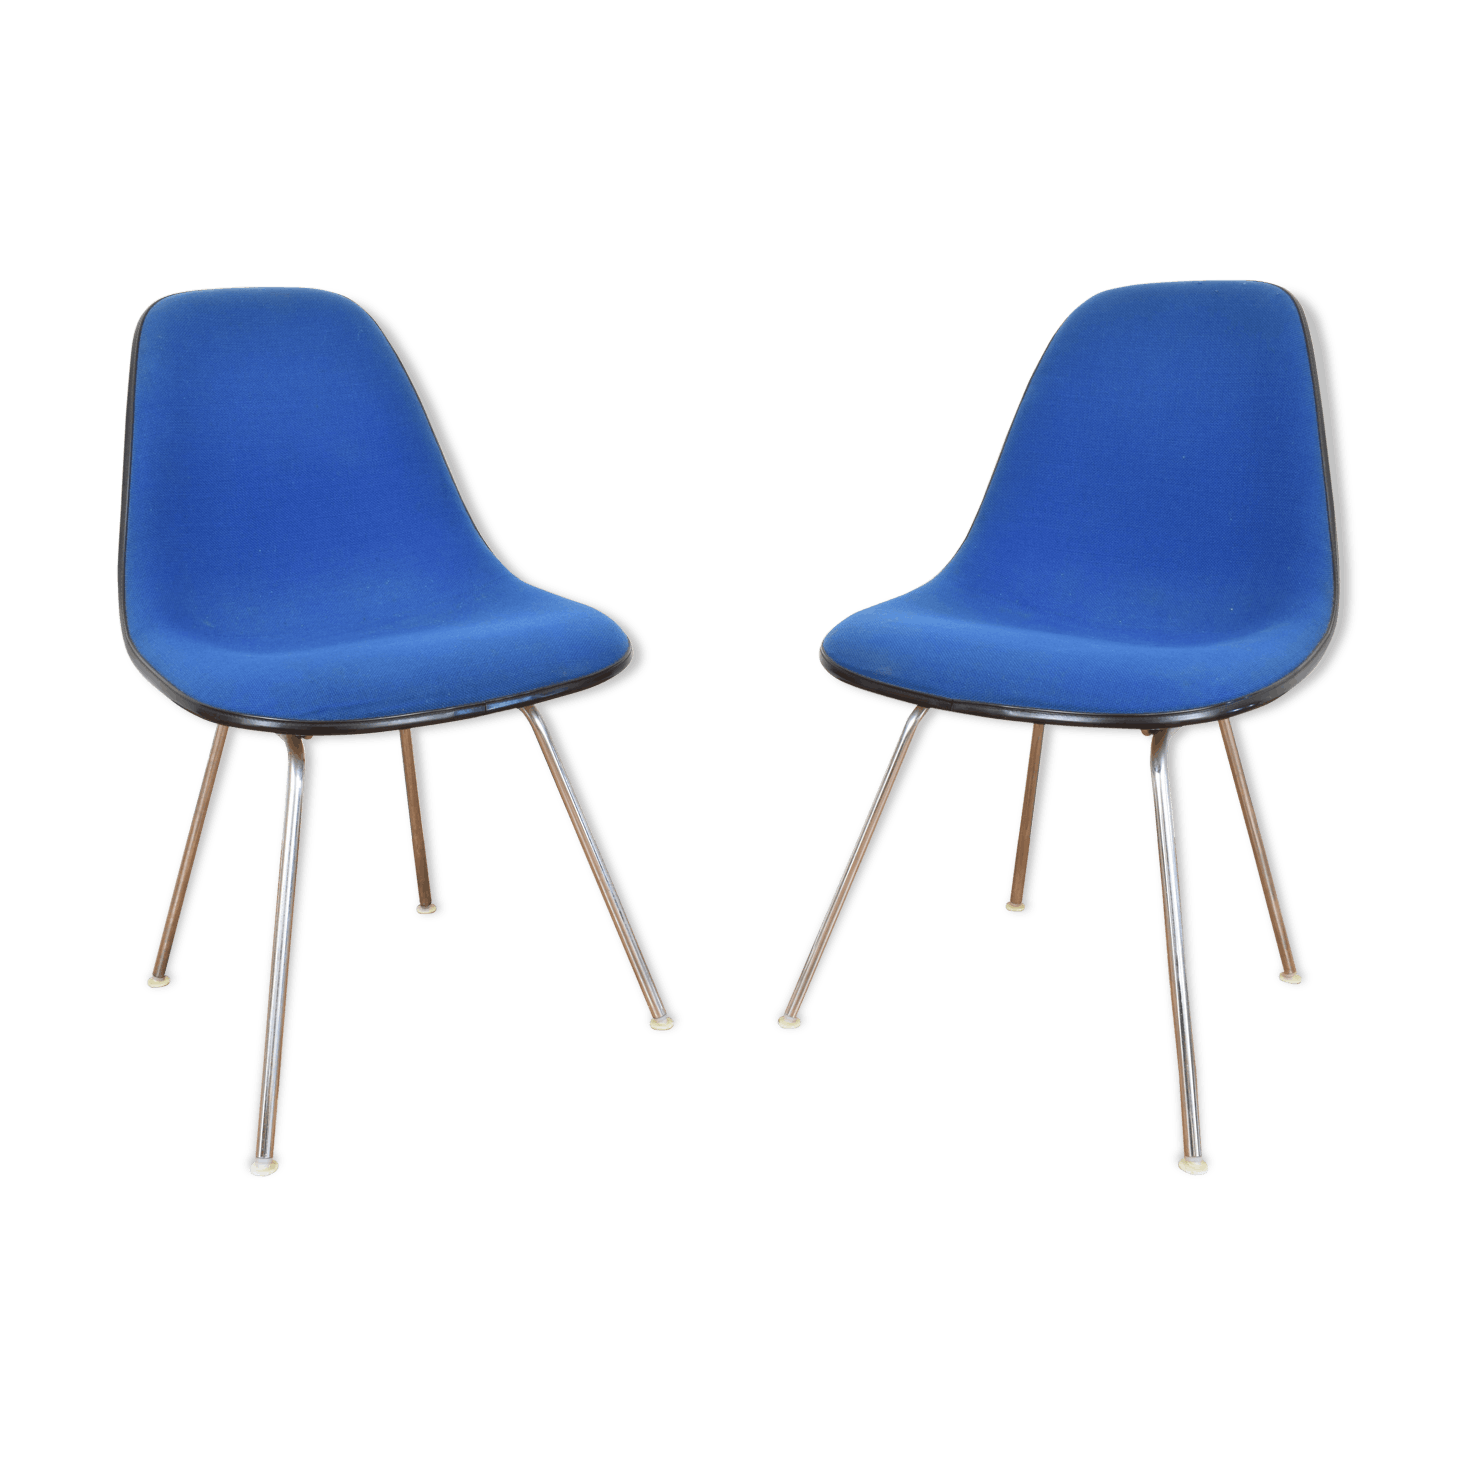 DSX chairs  — by Eames